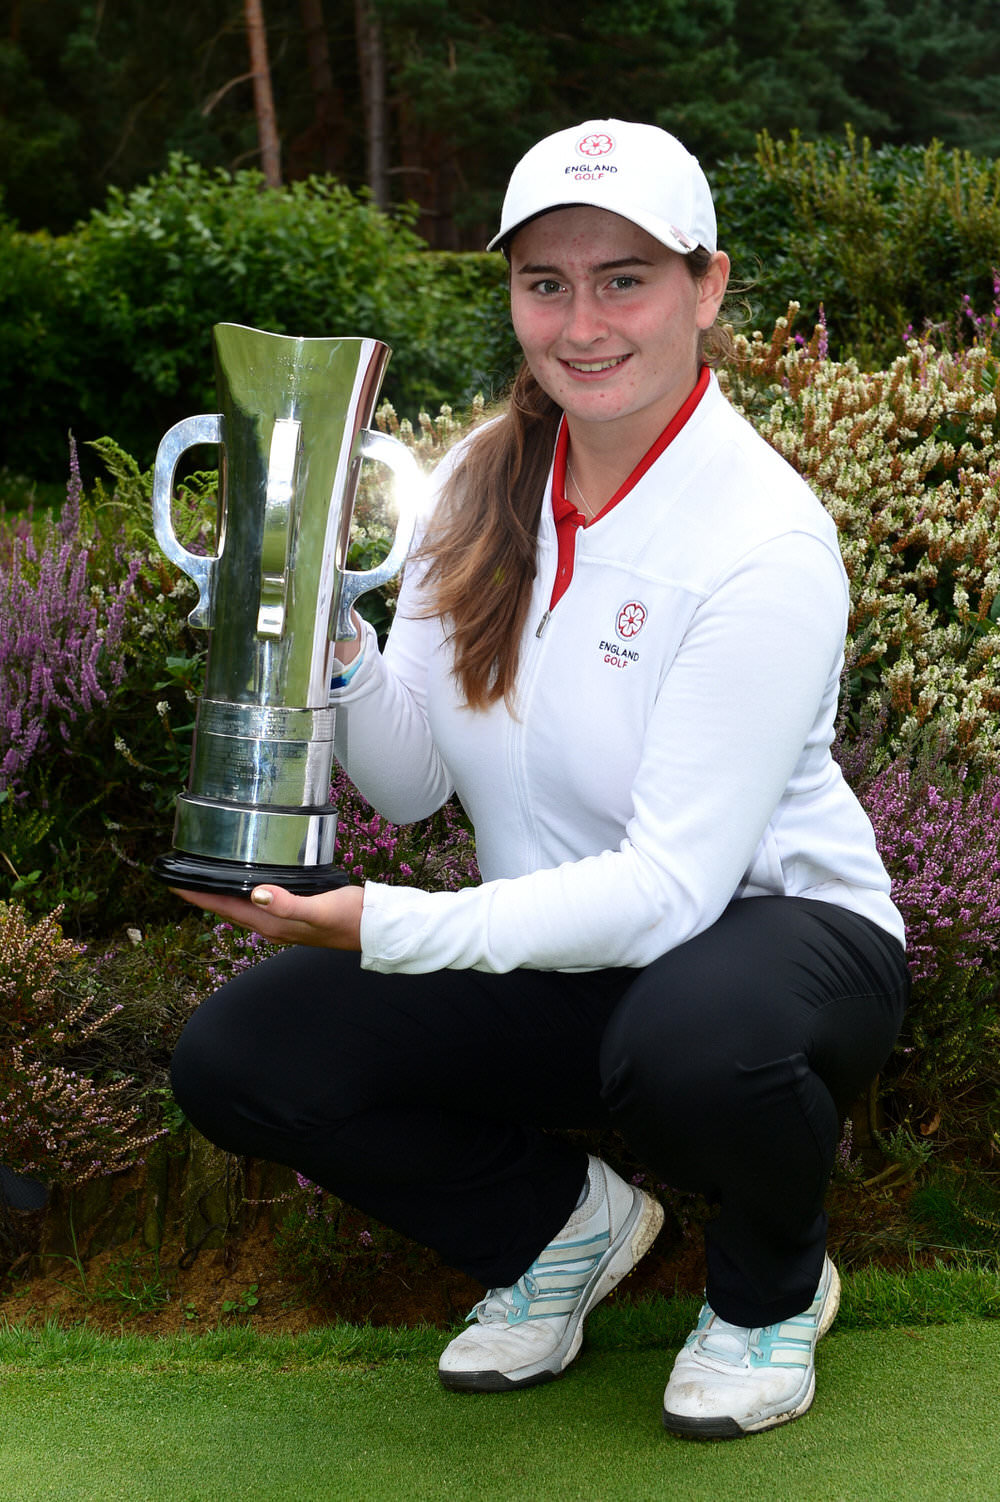 Lily May Humphreys won the 2017 Girls British Open Amateur championship at Enville. Credit: The R&A